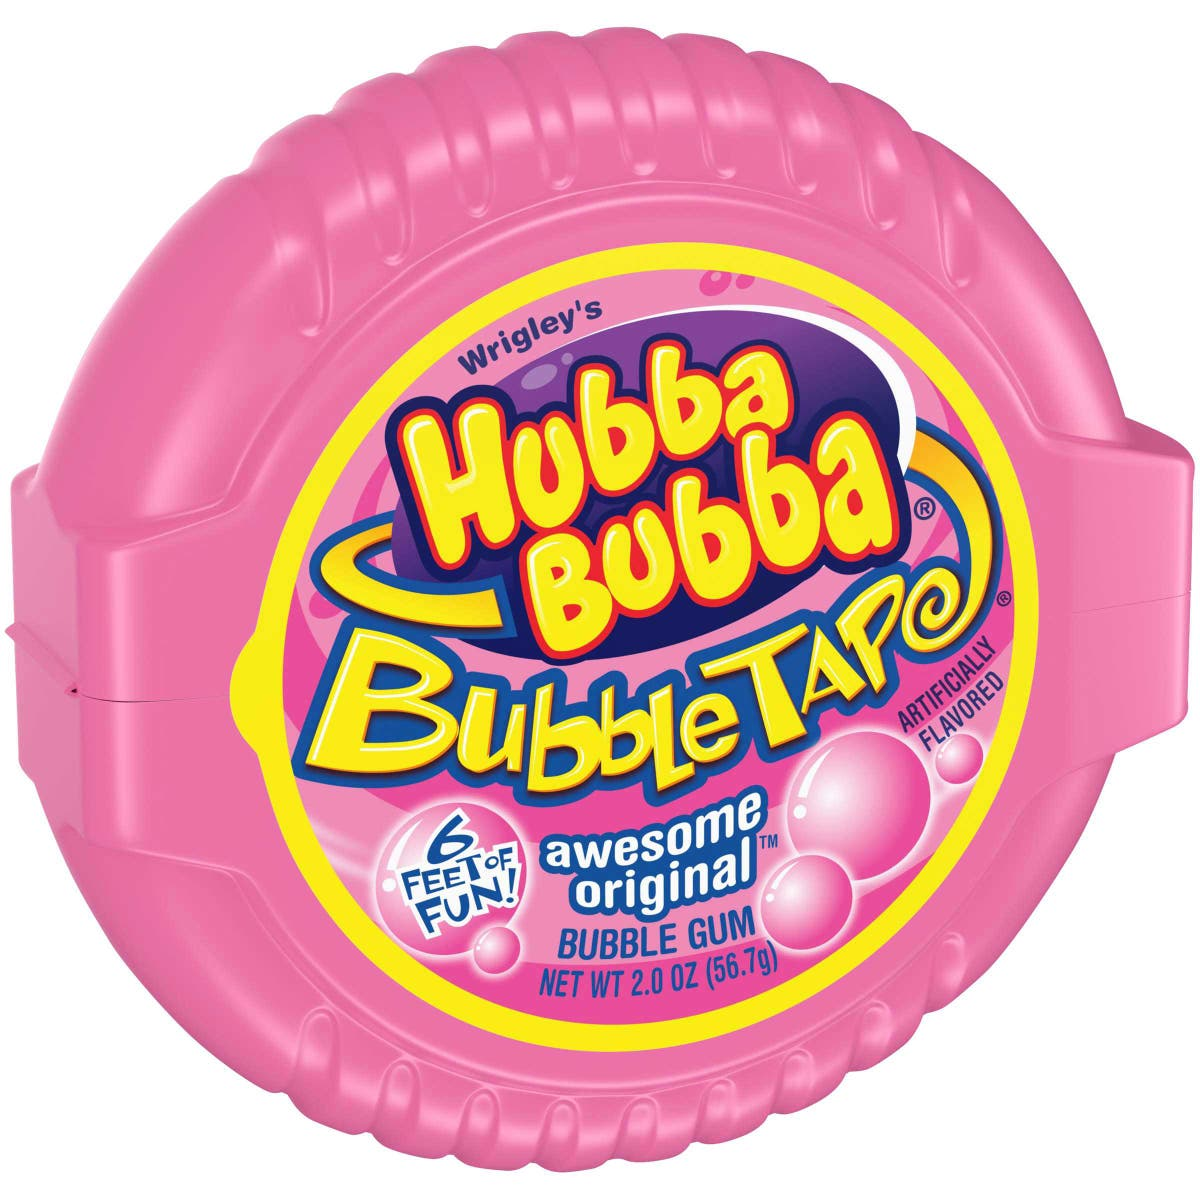 Hubba Bubba Bubble Tape Original (6 ct)